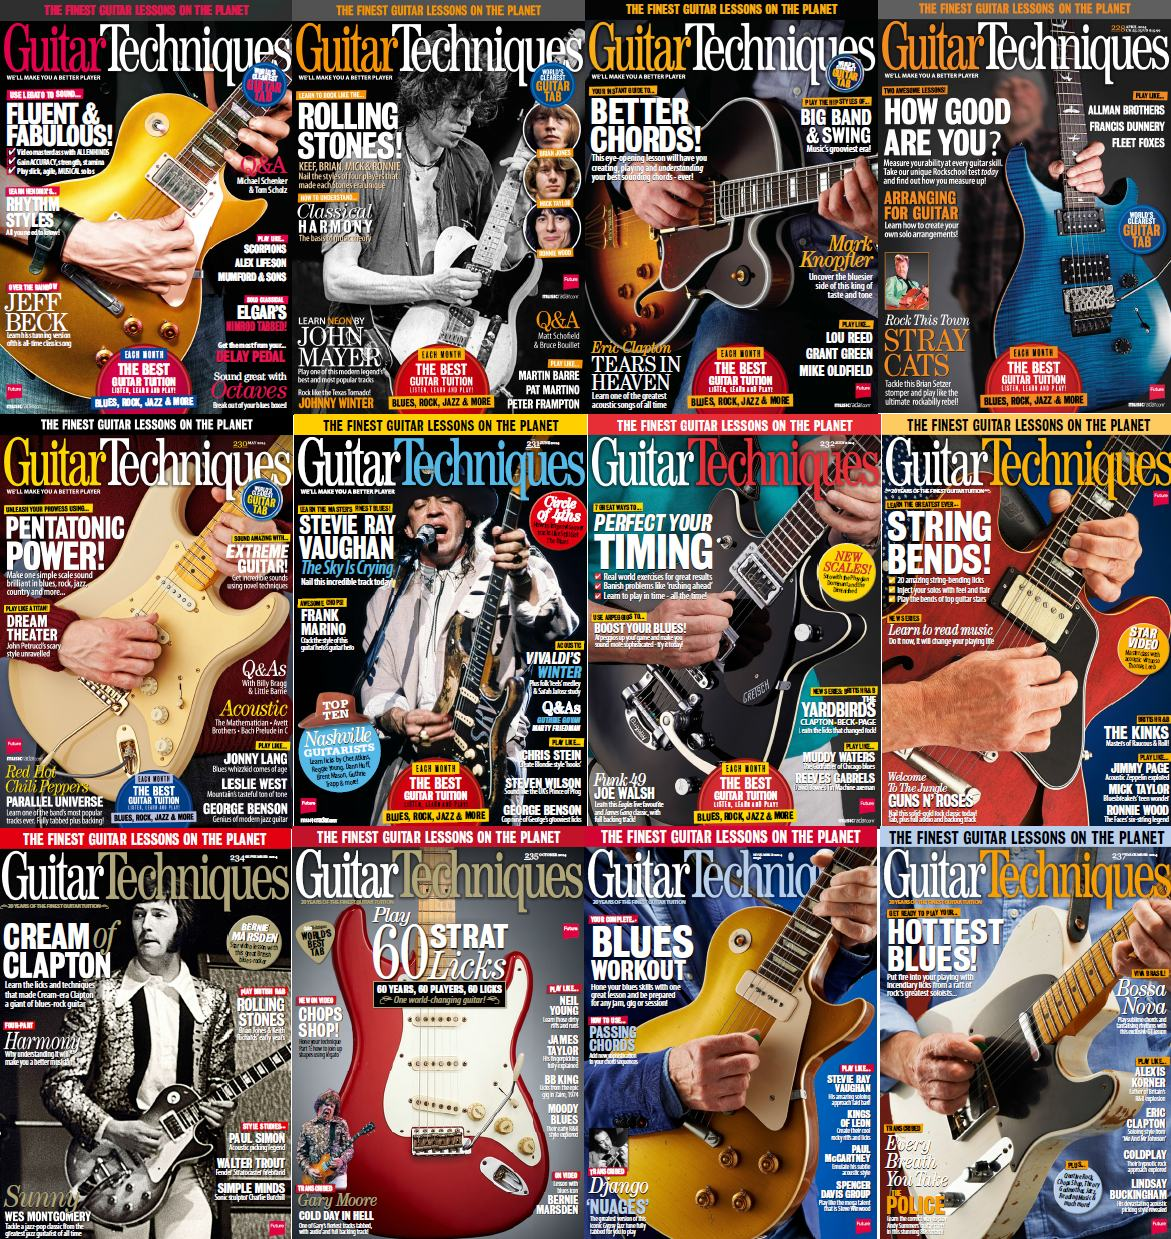 Guitar Techniques Magazine - Full Year 2014 Issues Collection